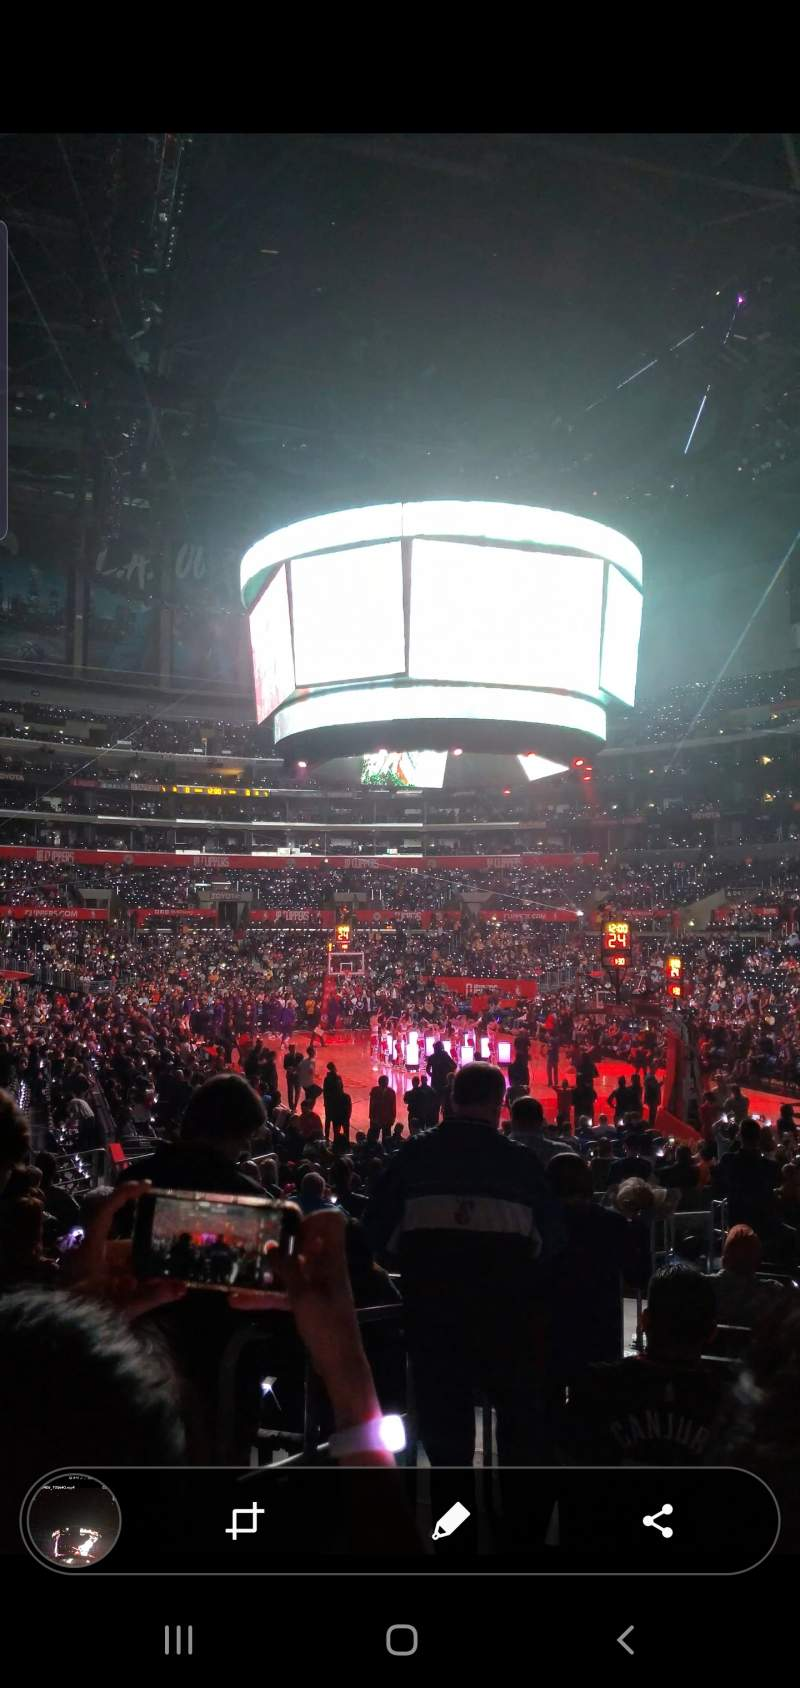 Seating view for staples center Section 116 Row 16 Seat 31